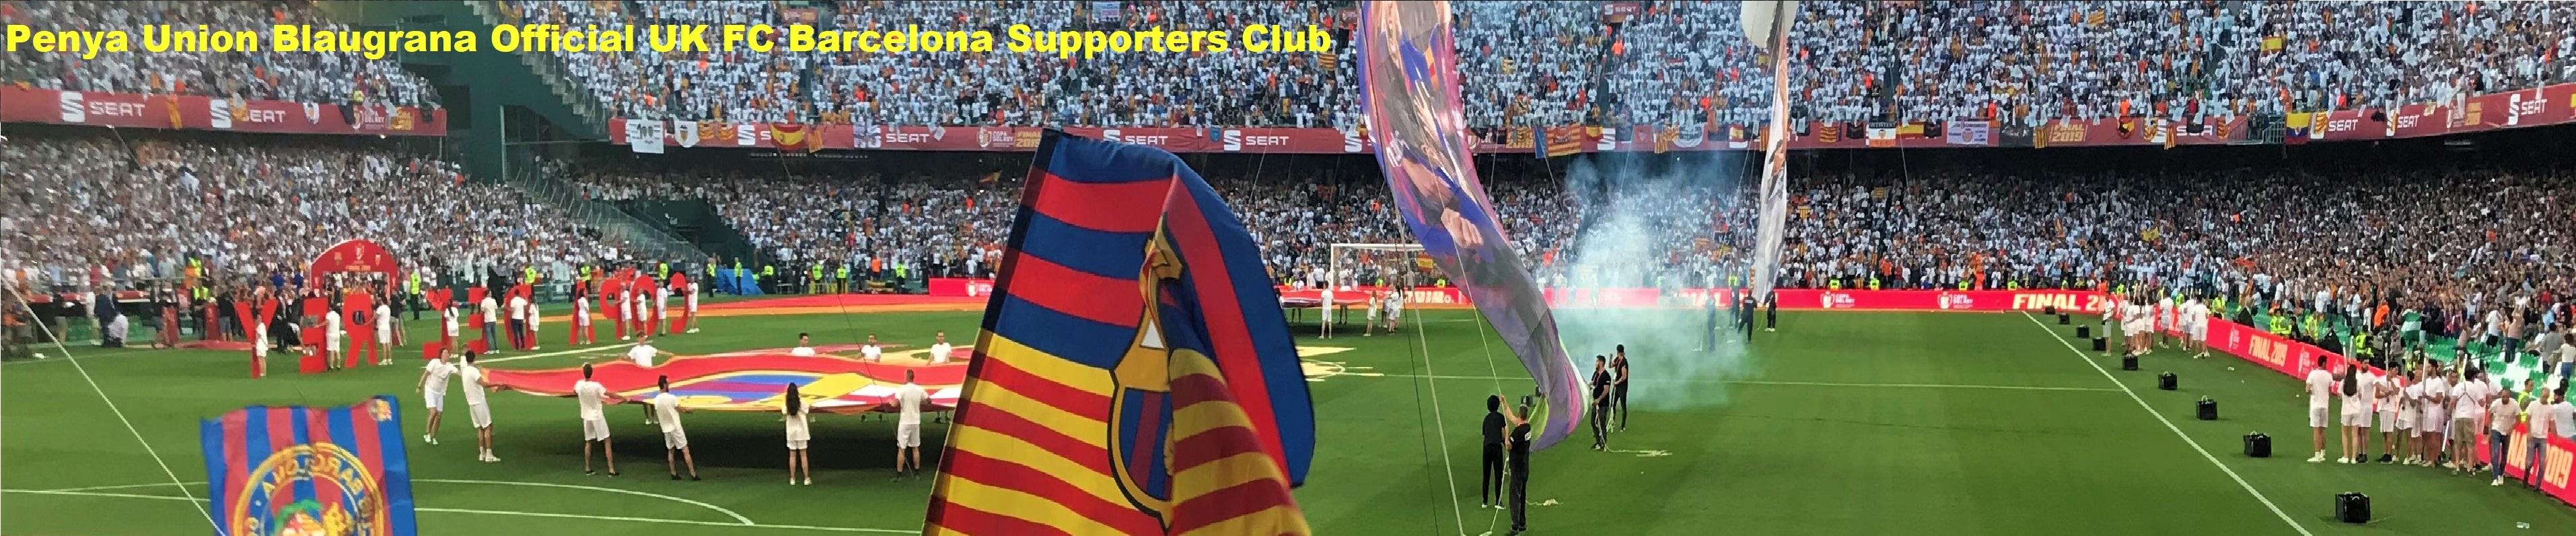 Penya Union Blaugrana - Official UK FCB Supporters